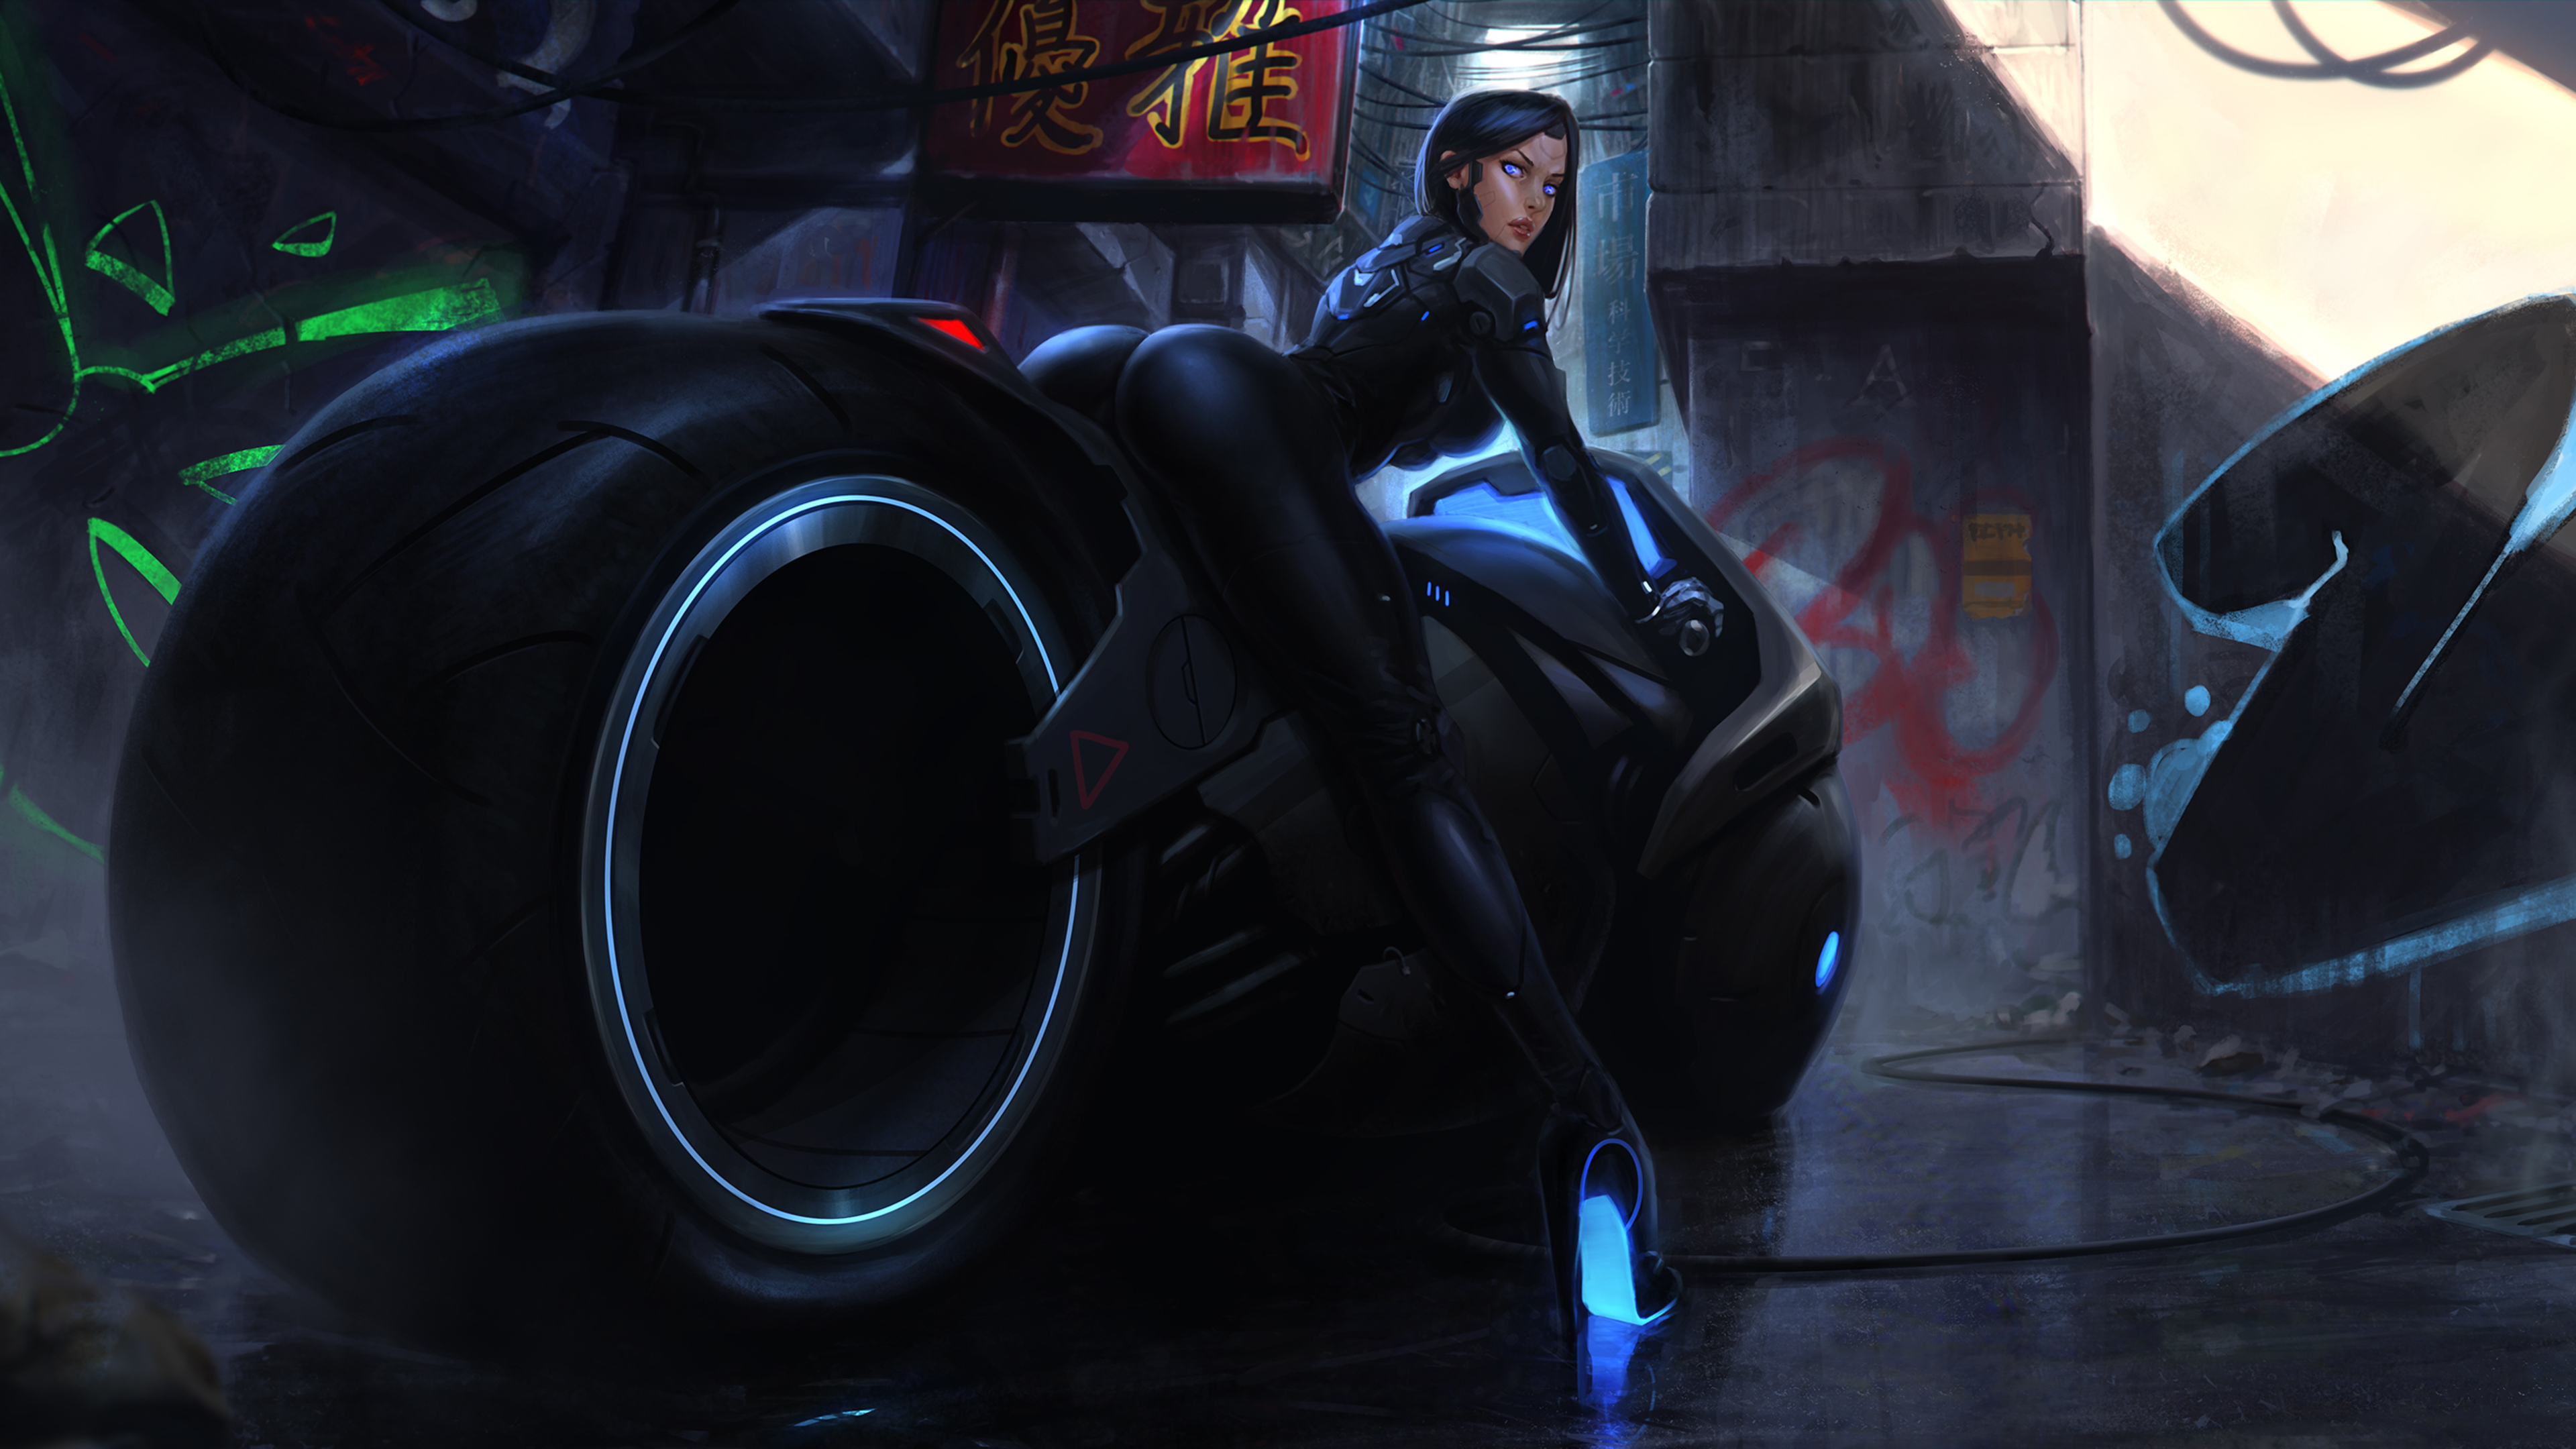 Indian Girl Hd Wallpaper 1920x1080 3840x2160 Hot Girl On Tron Bike Artwork 4k Hd 4k